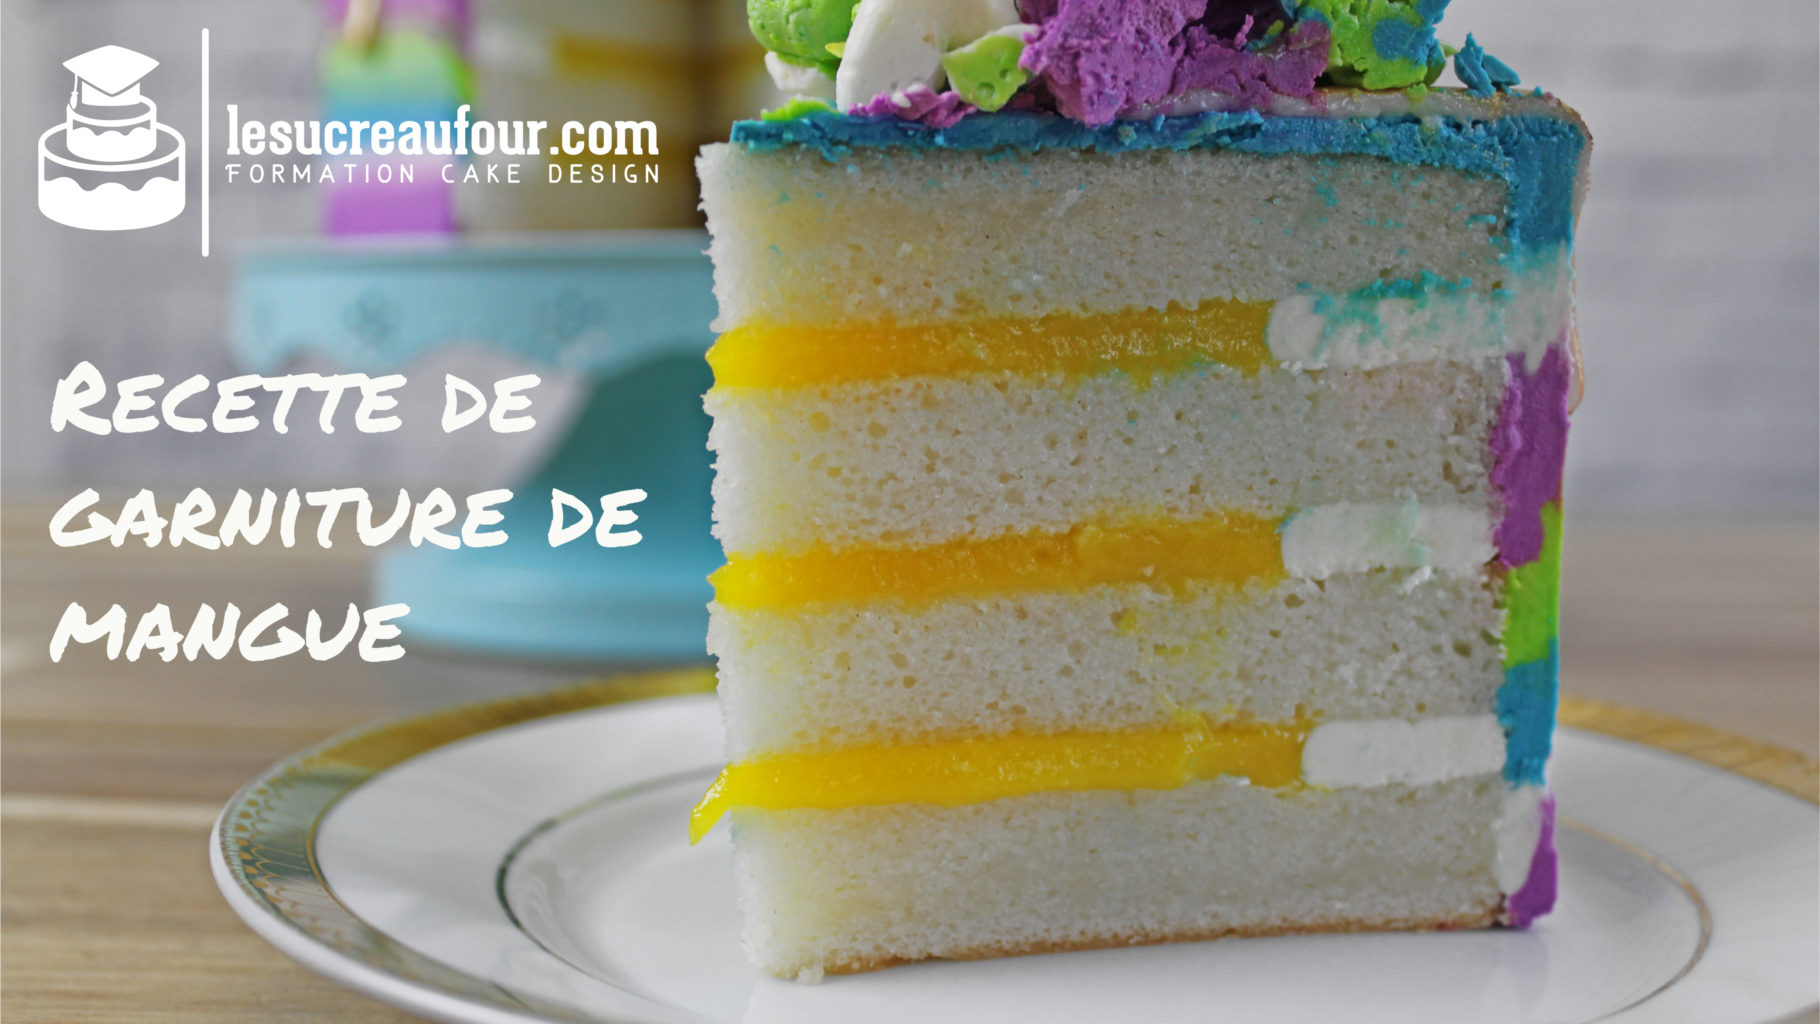 garniture de mangue cake design